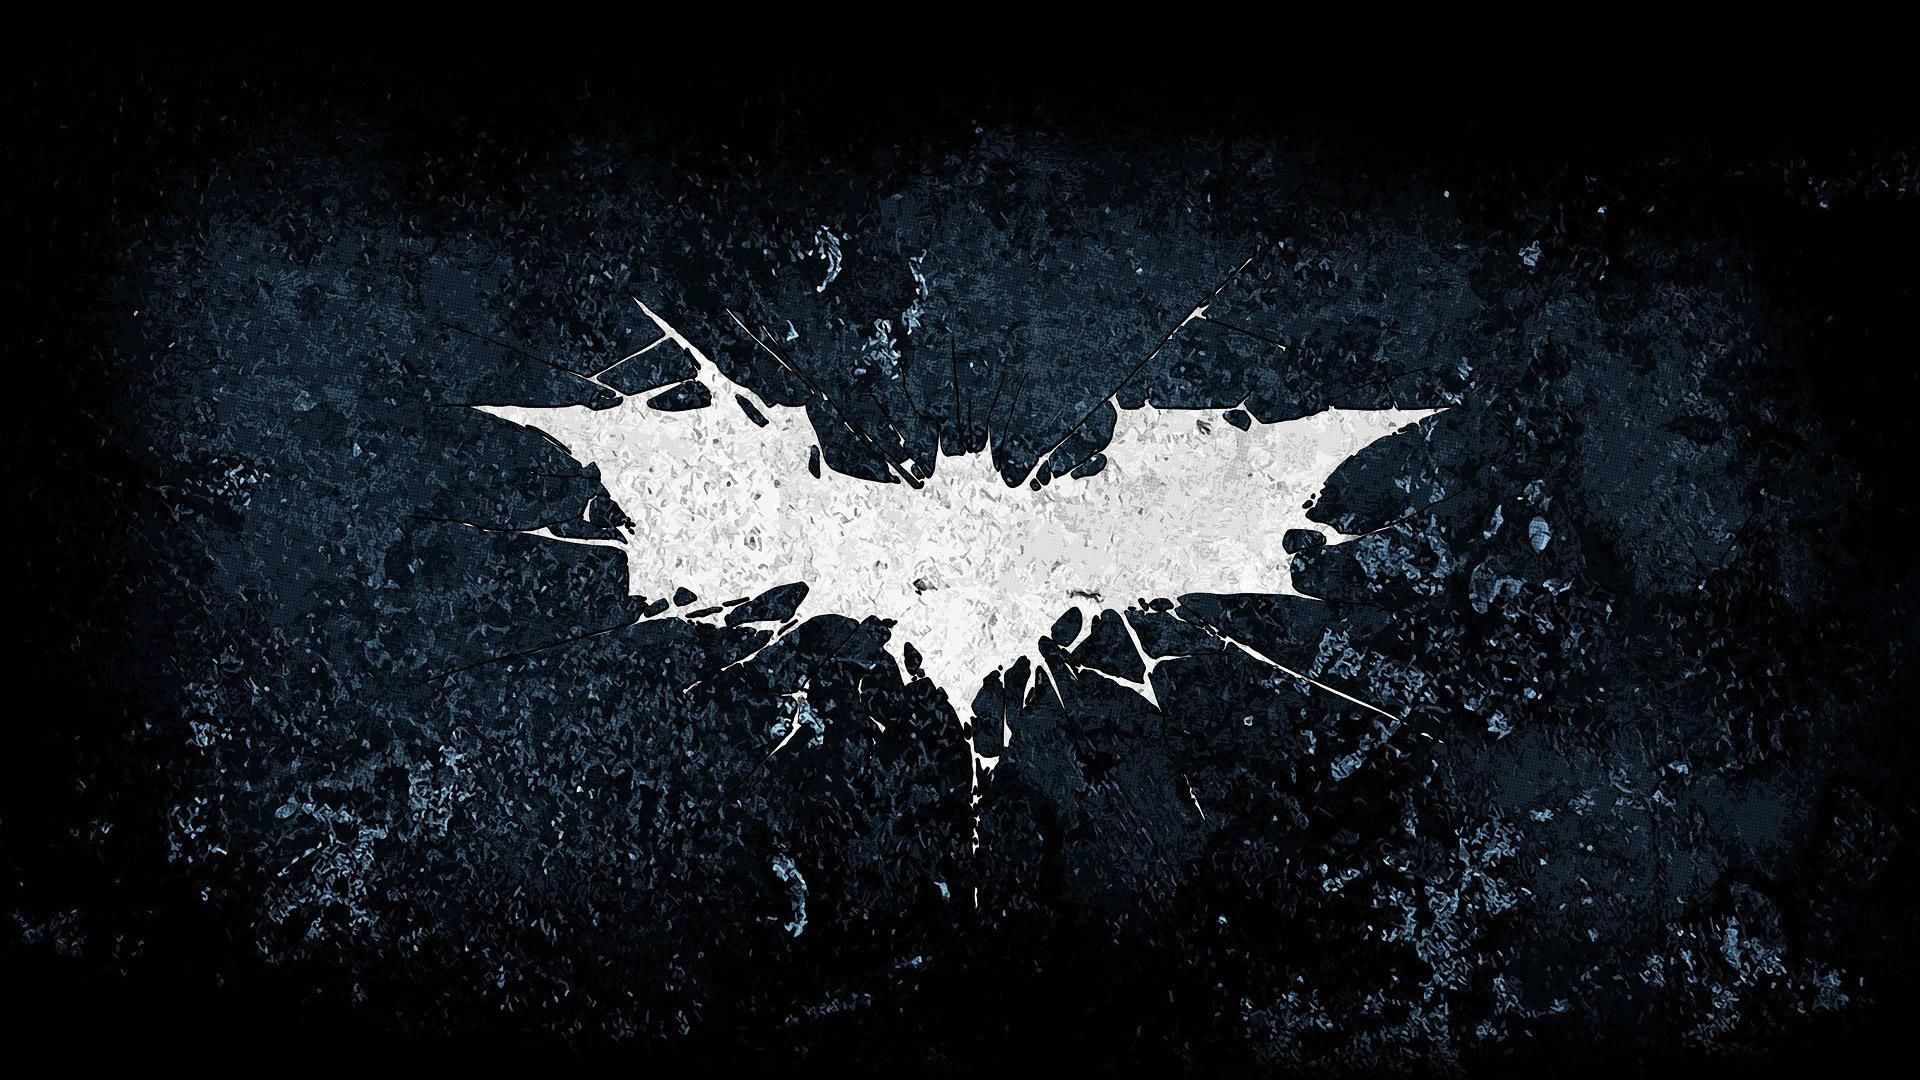 Black Hd Wallpapers 1080p Widescreen With Images Dark Knight